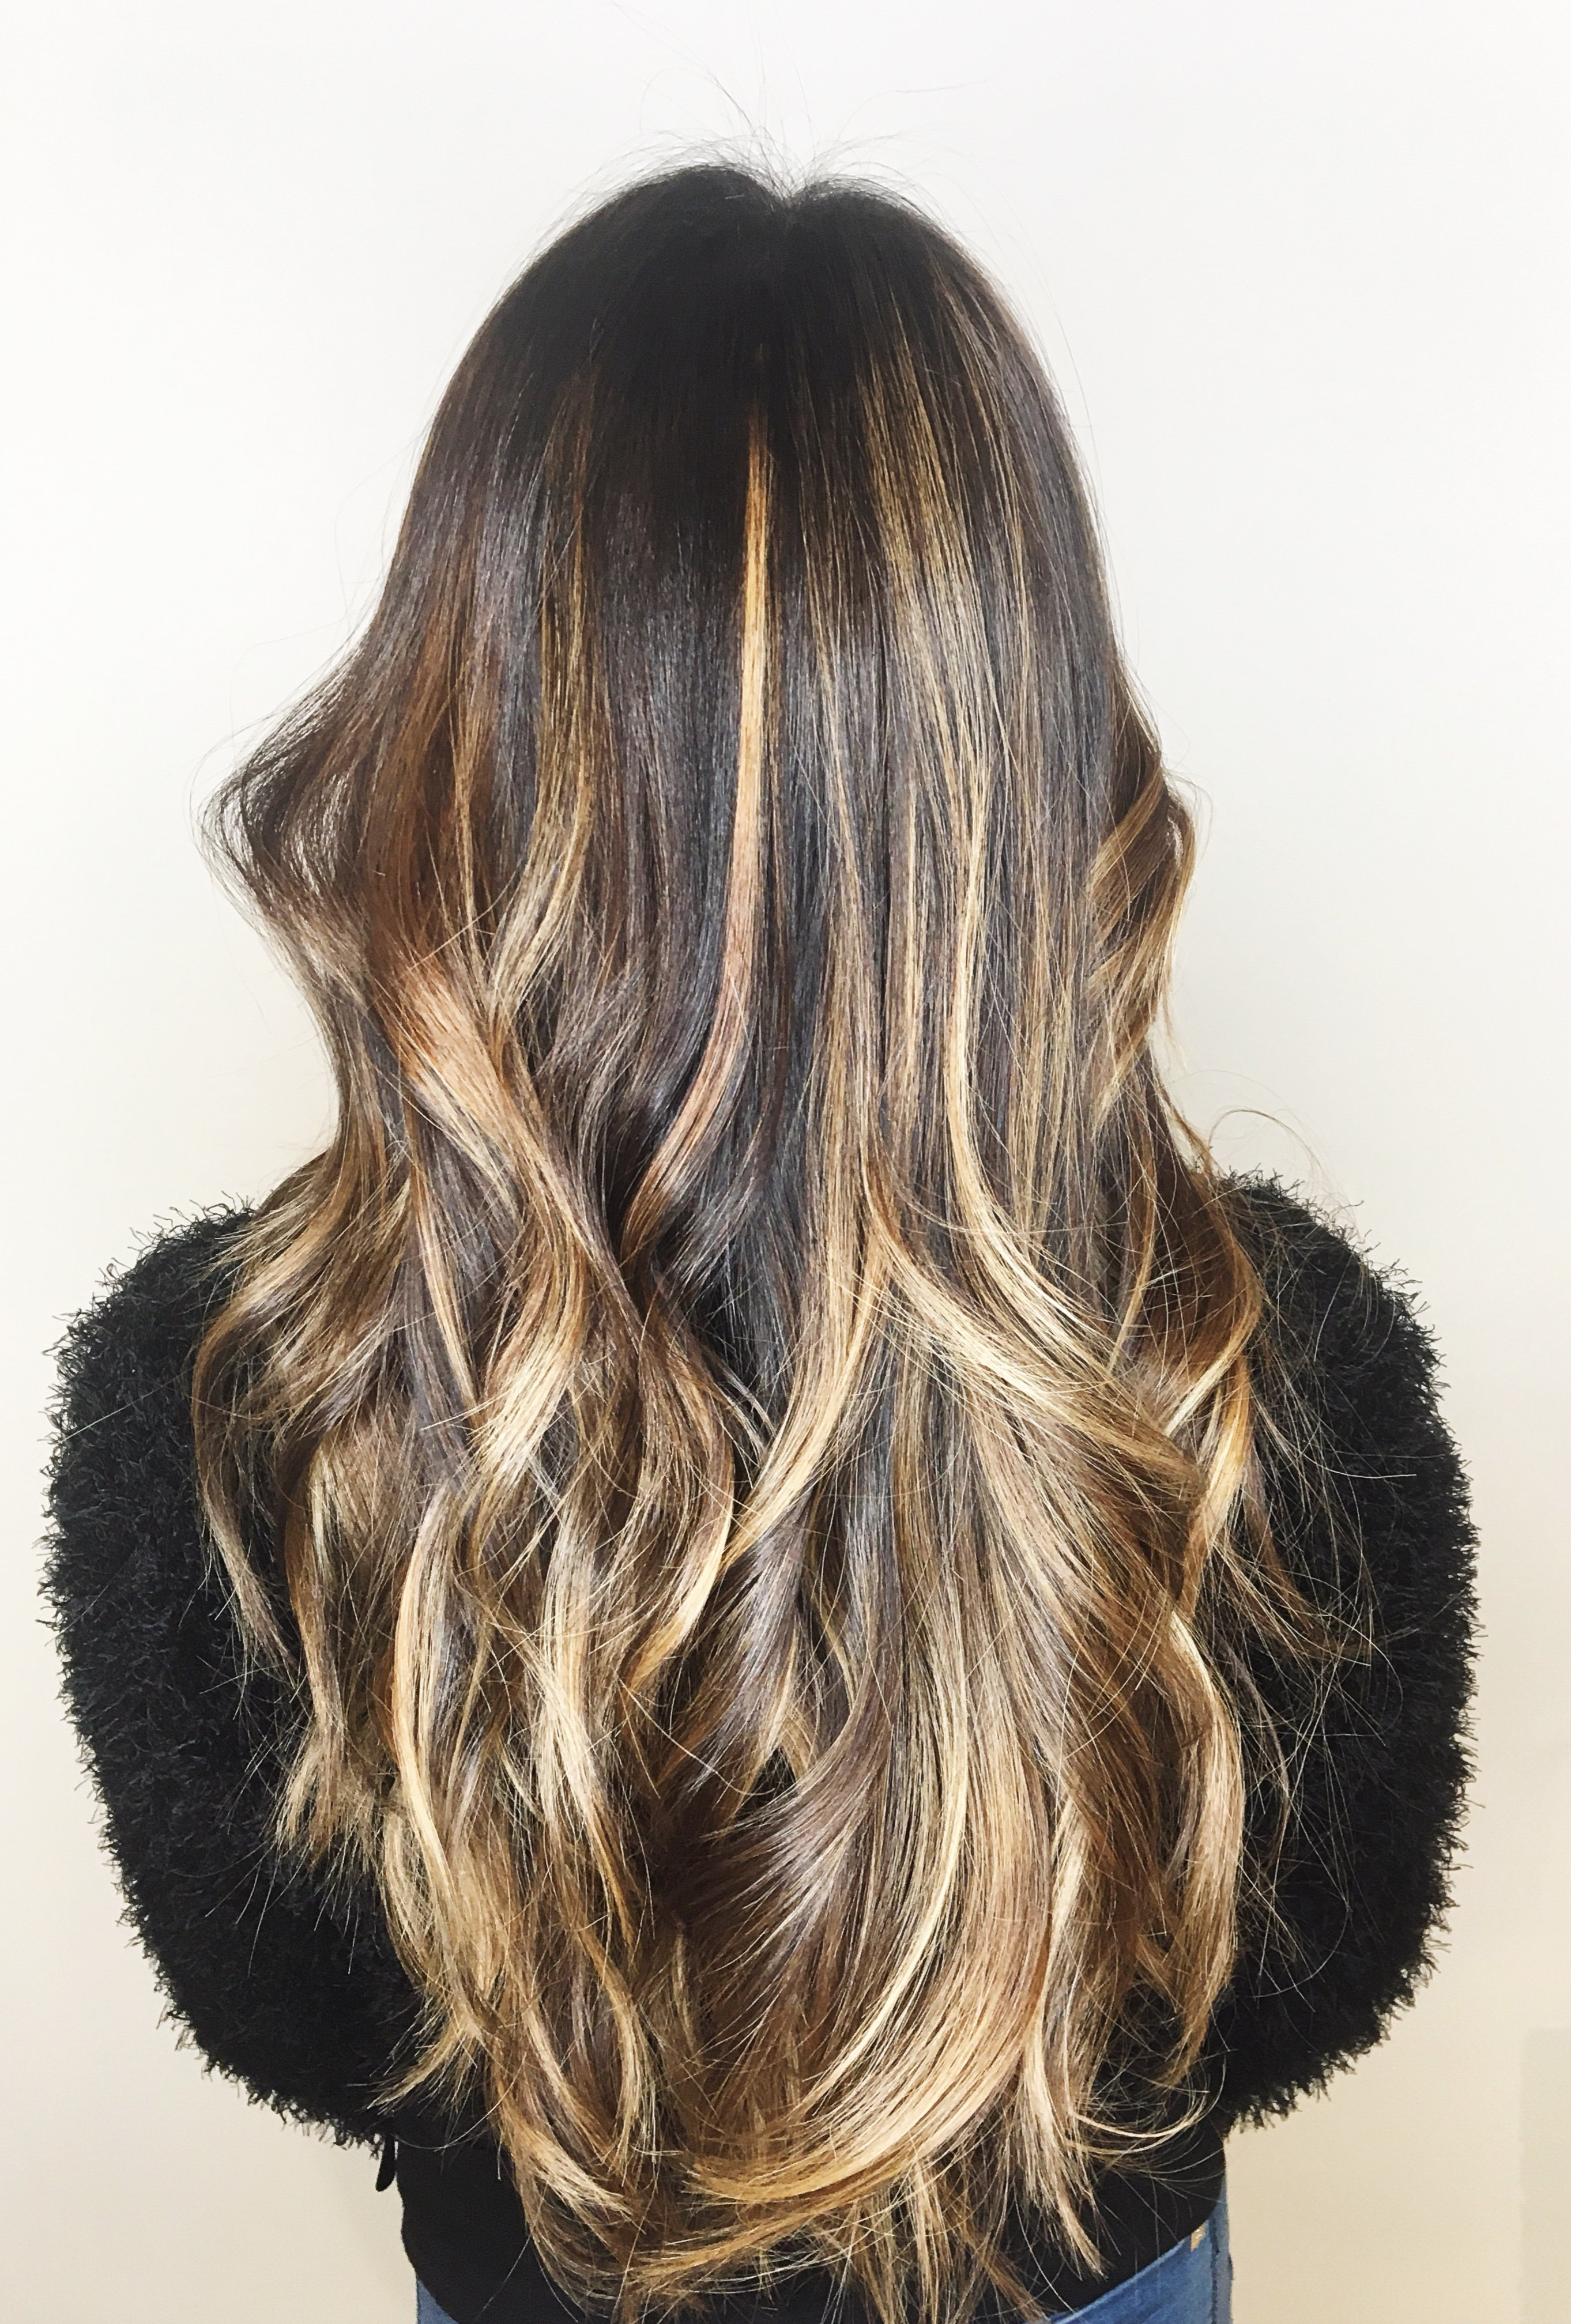 Lifestyle Blog Chocolate and Lace shares all your need to know hair care questions answered.